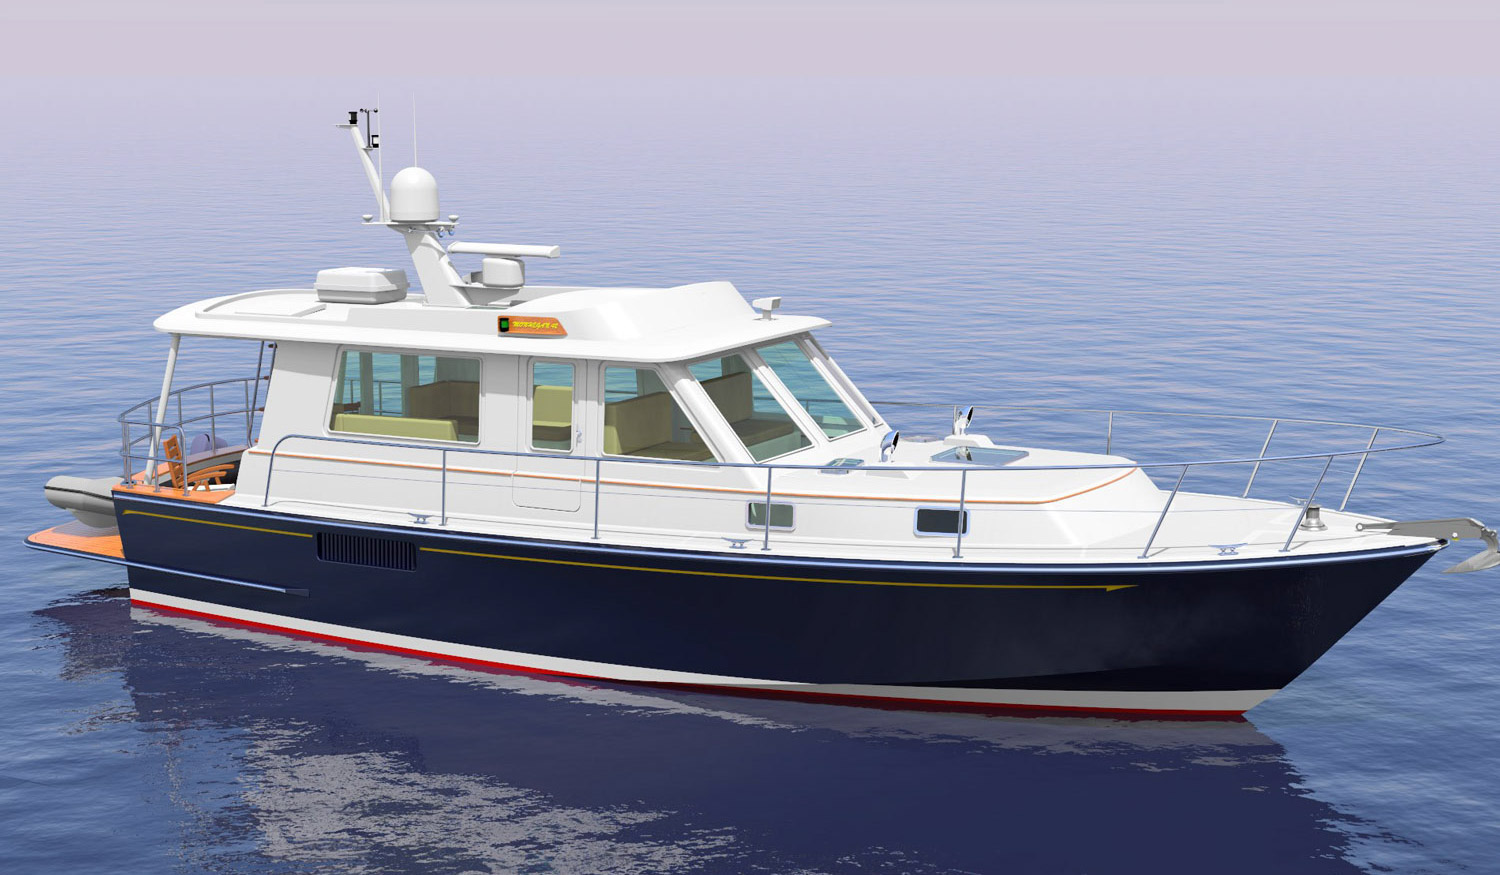 Monhegan 42 Extended Cruiser Version, by Lyman-Morse